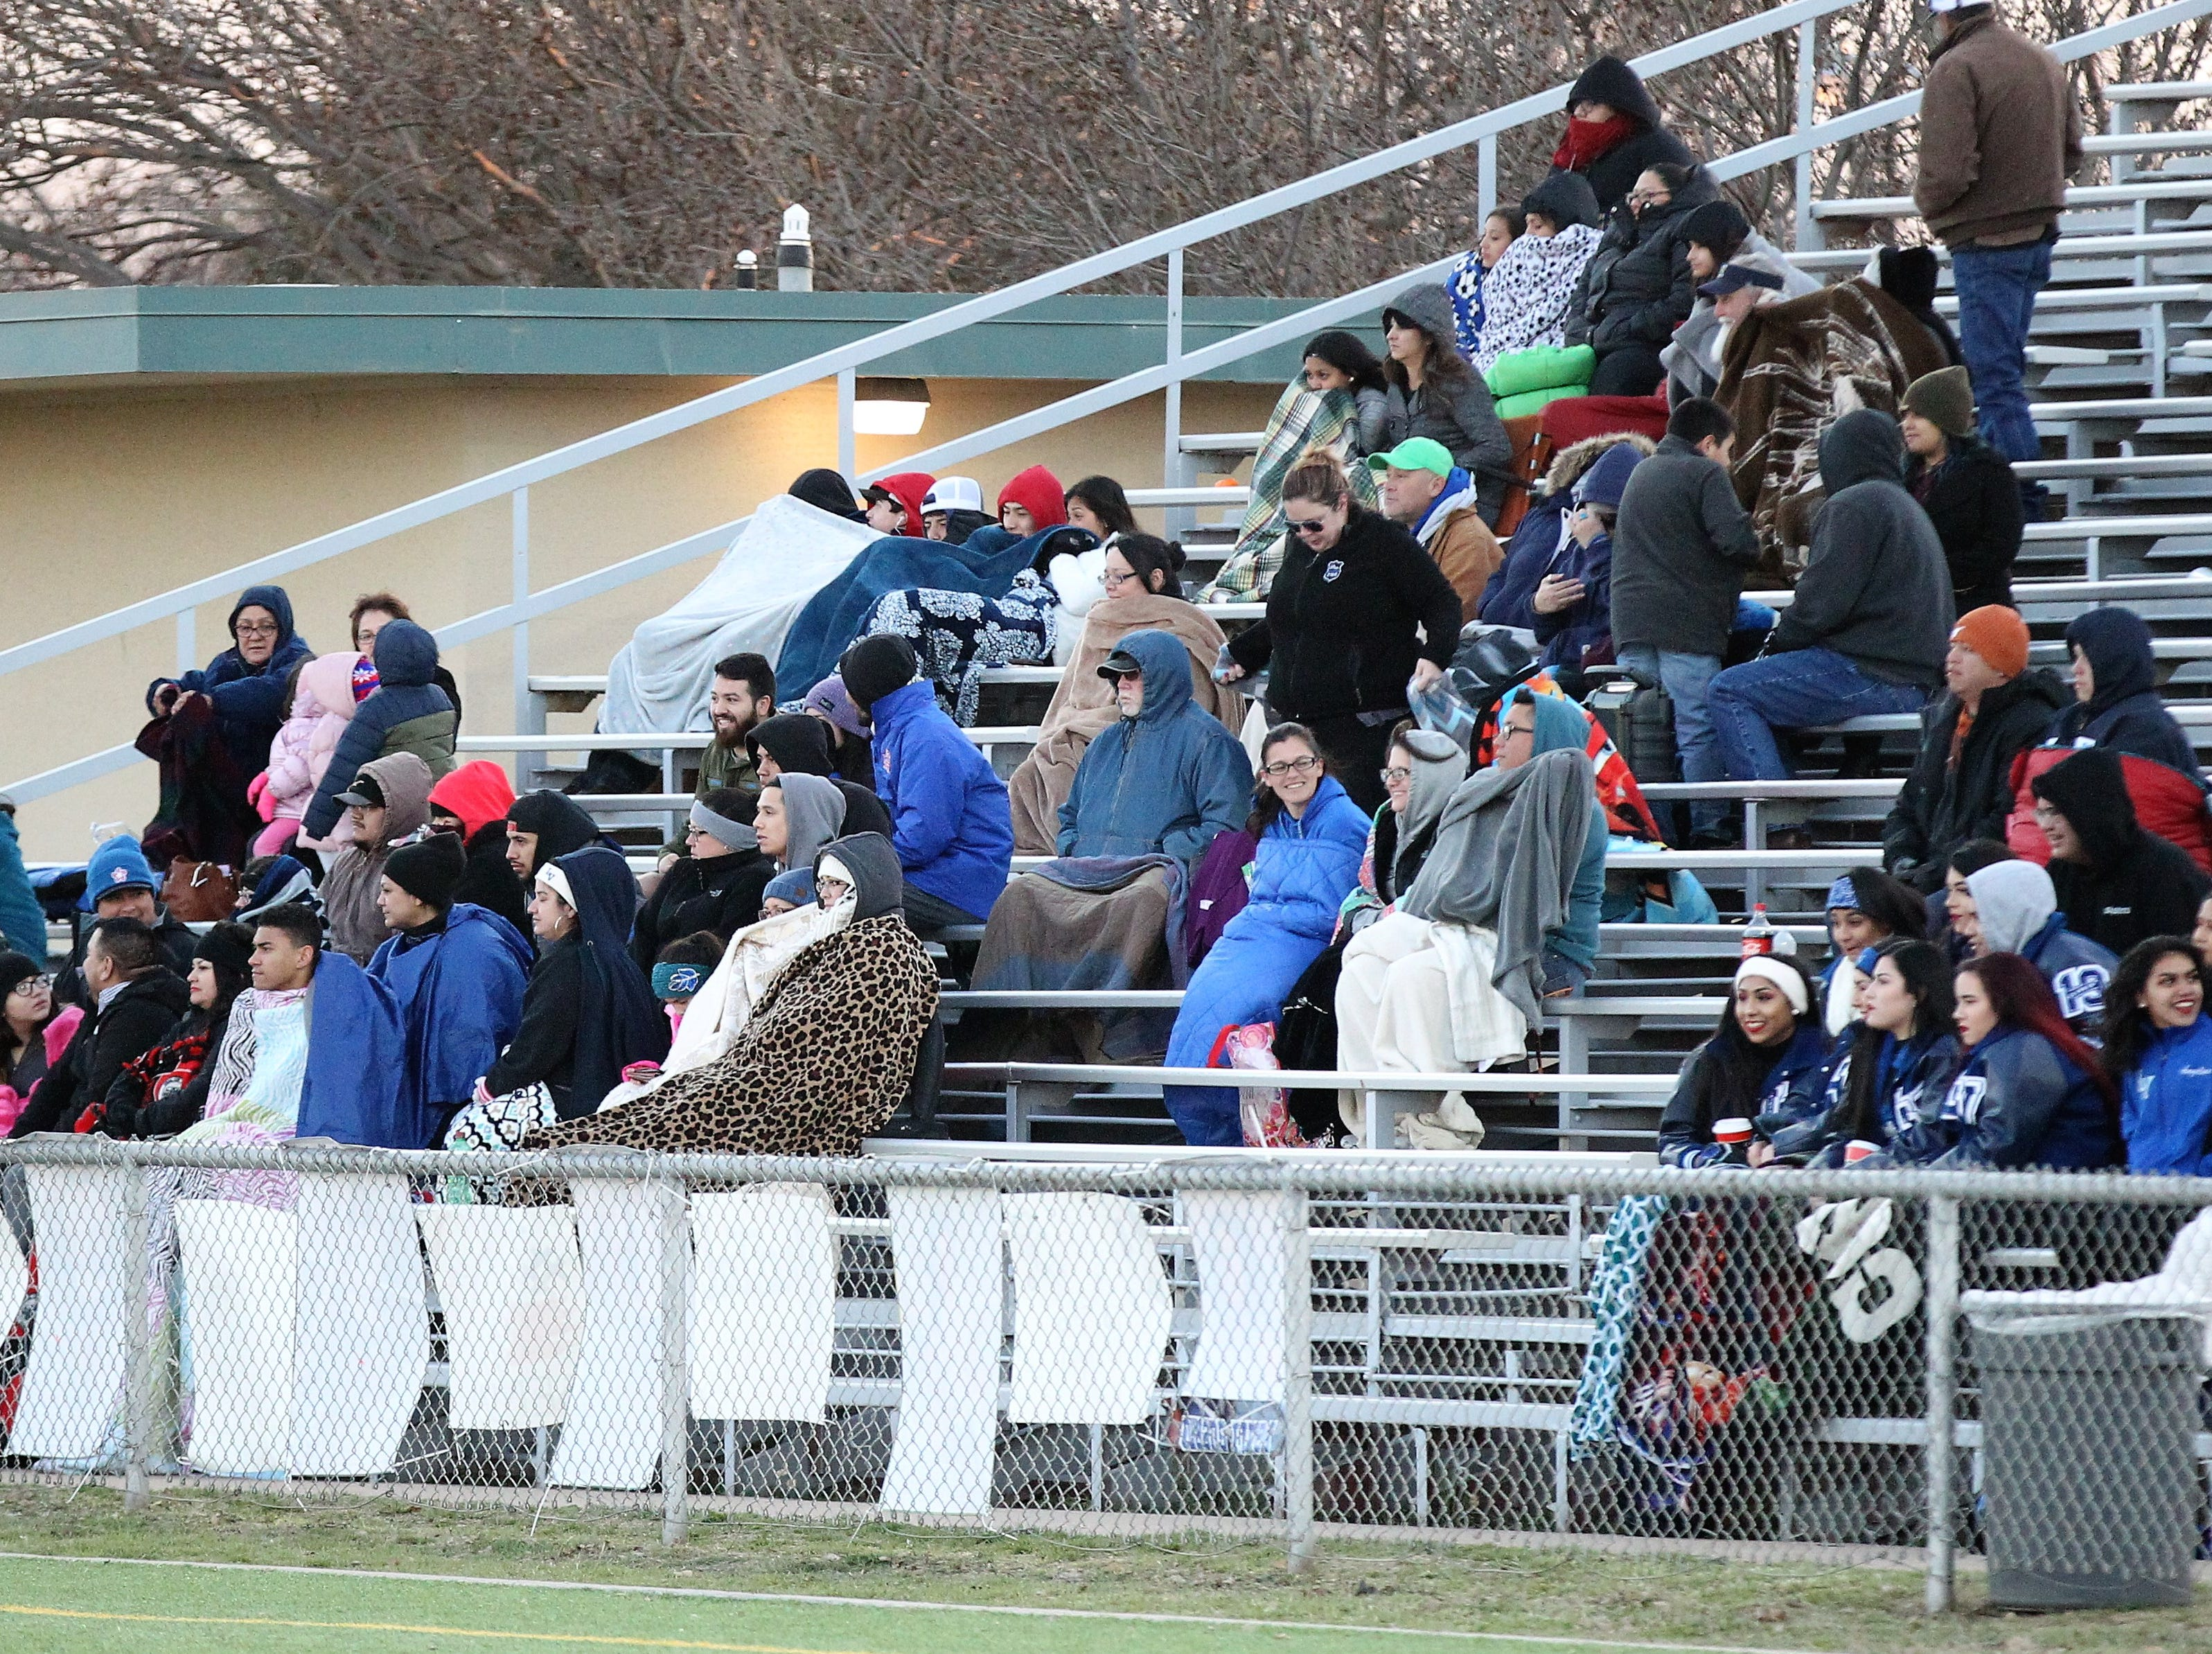 Lake View Maidens fans braved the cold temperatures in a District 4-4A soccer match against Snyder at Old Bobcat Stadium on Tuesday, March 5, 2019.